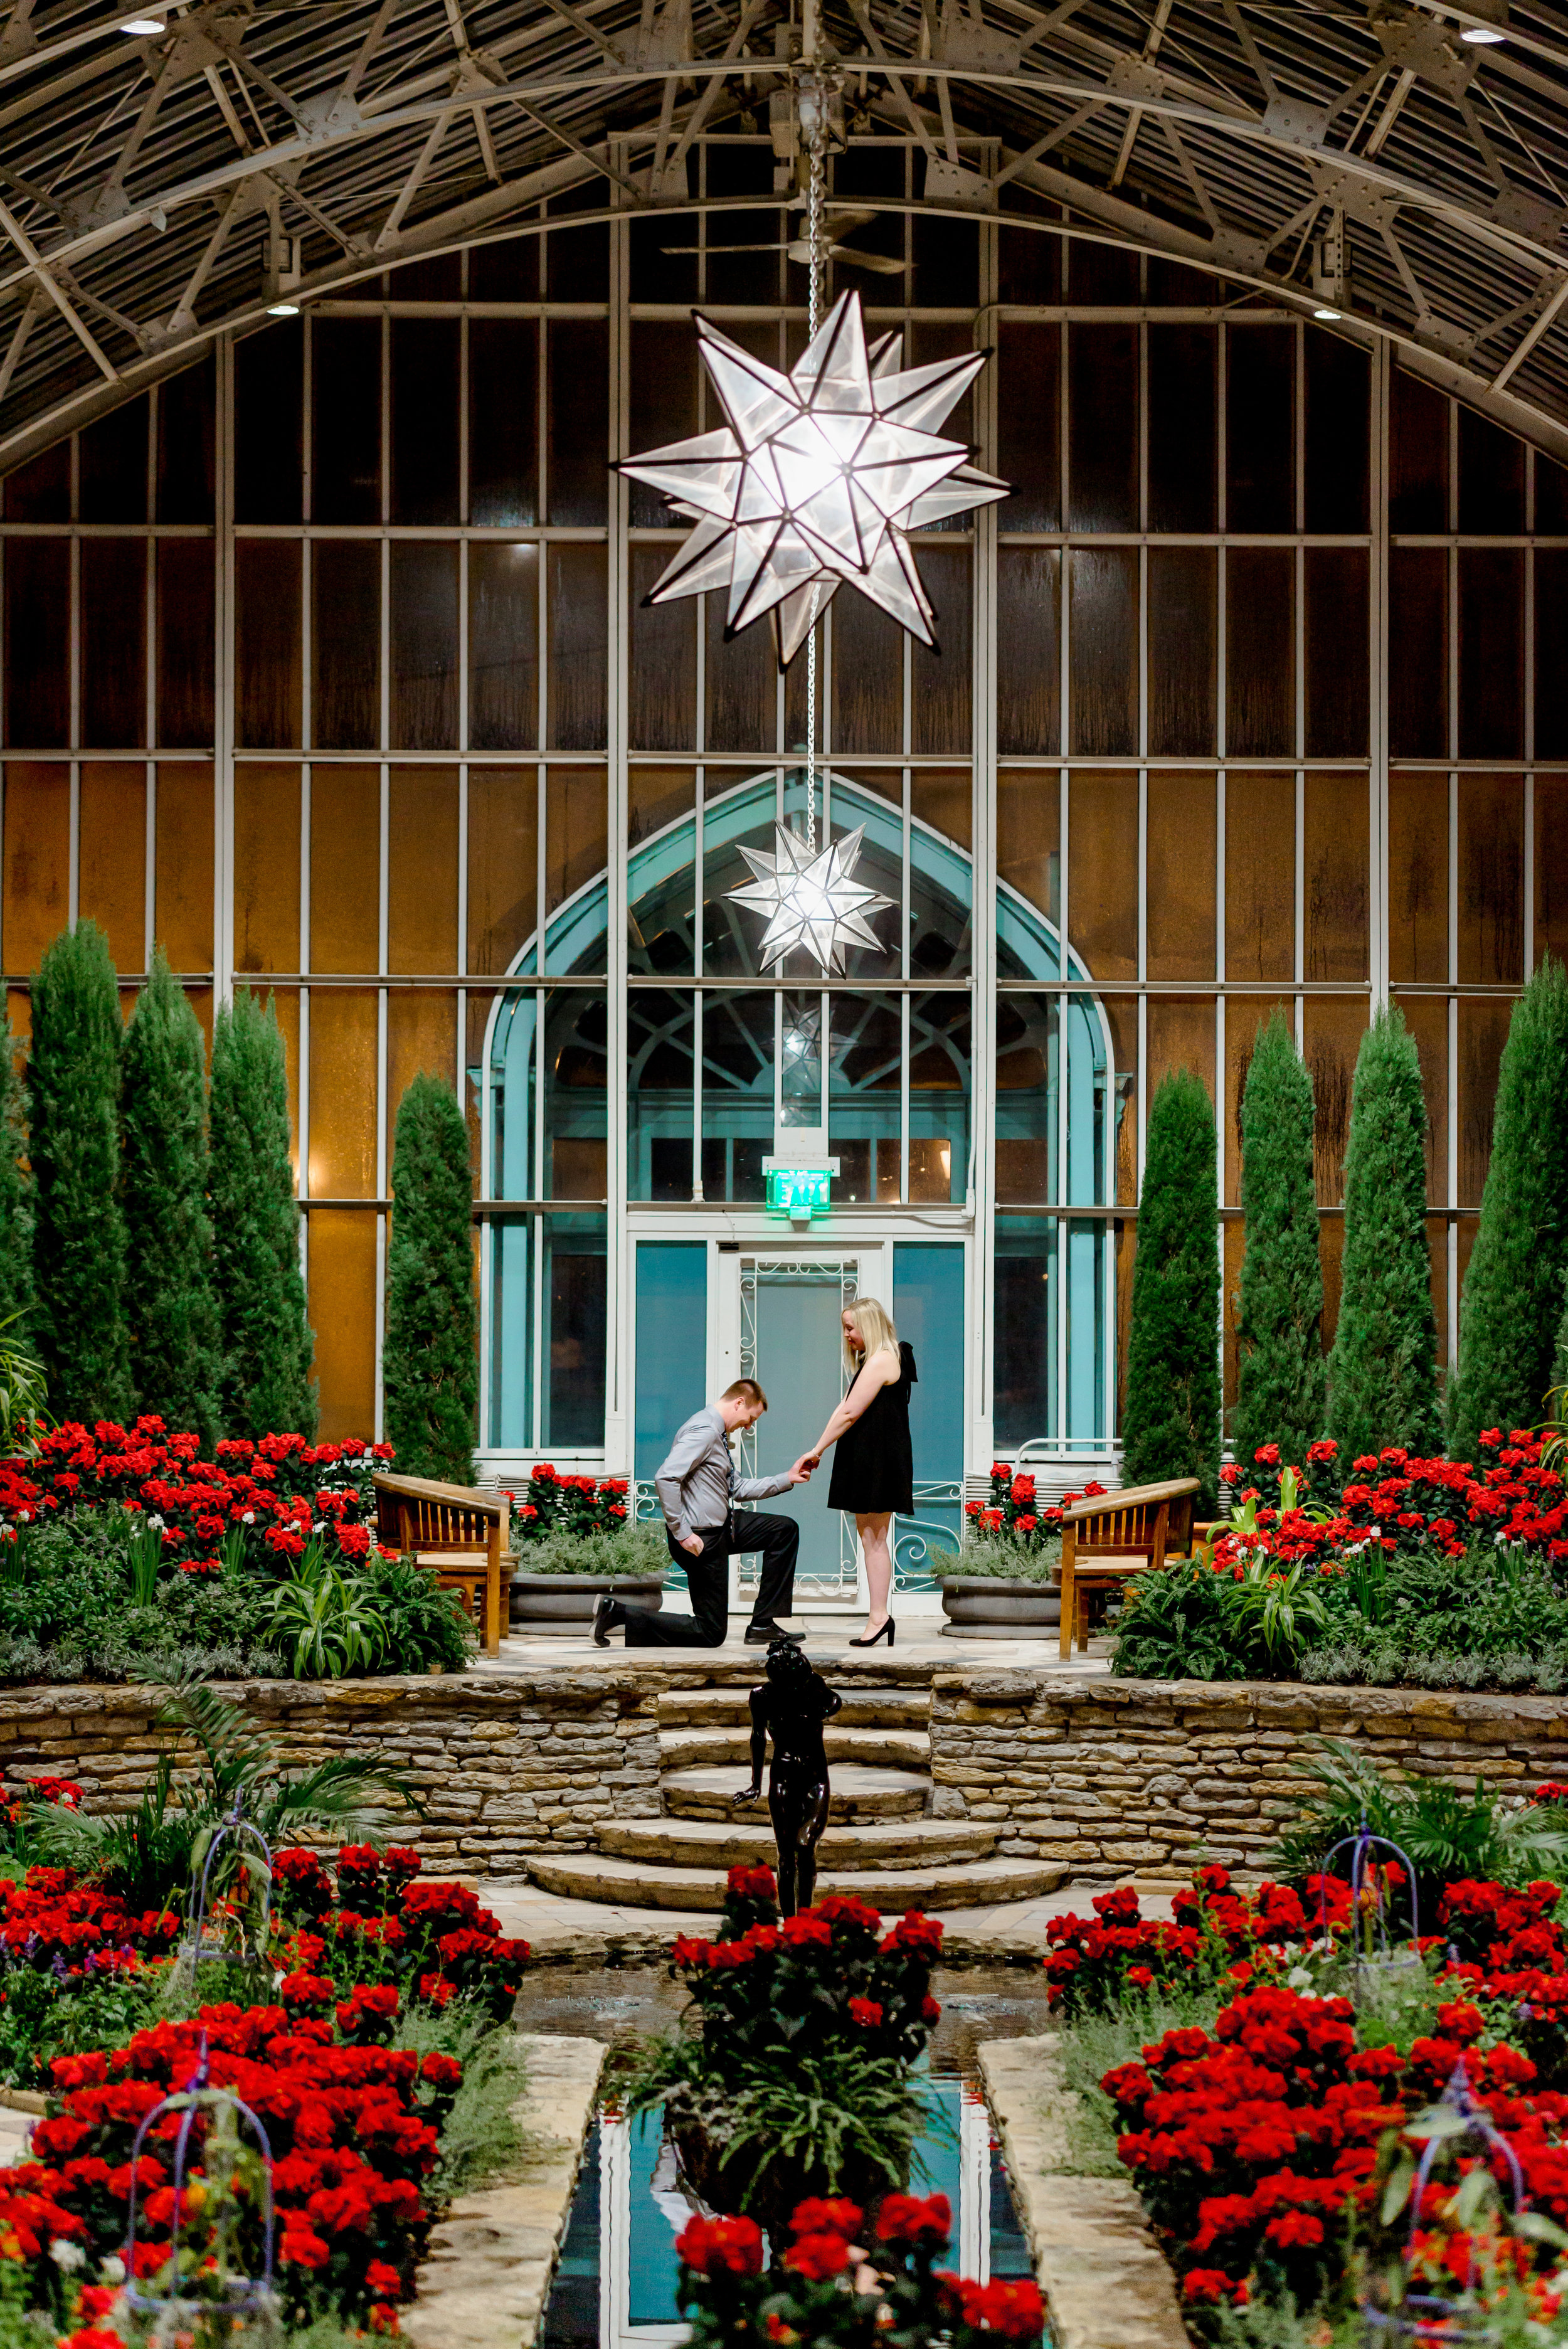 Surprise Proposal Photographer in MN - Como Conservatory Marriage Proposal - Luxury Engagement Photographer